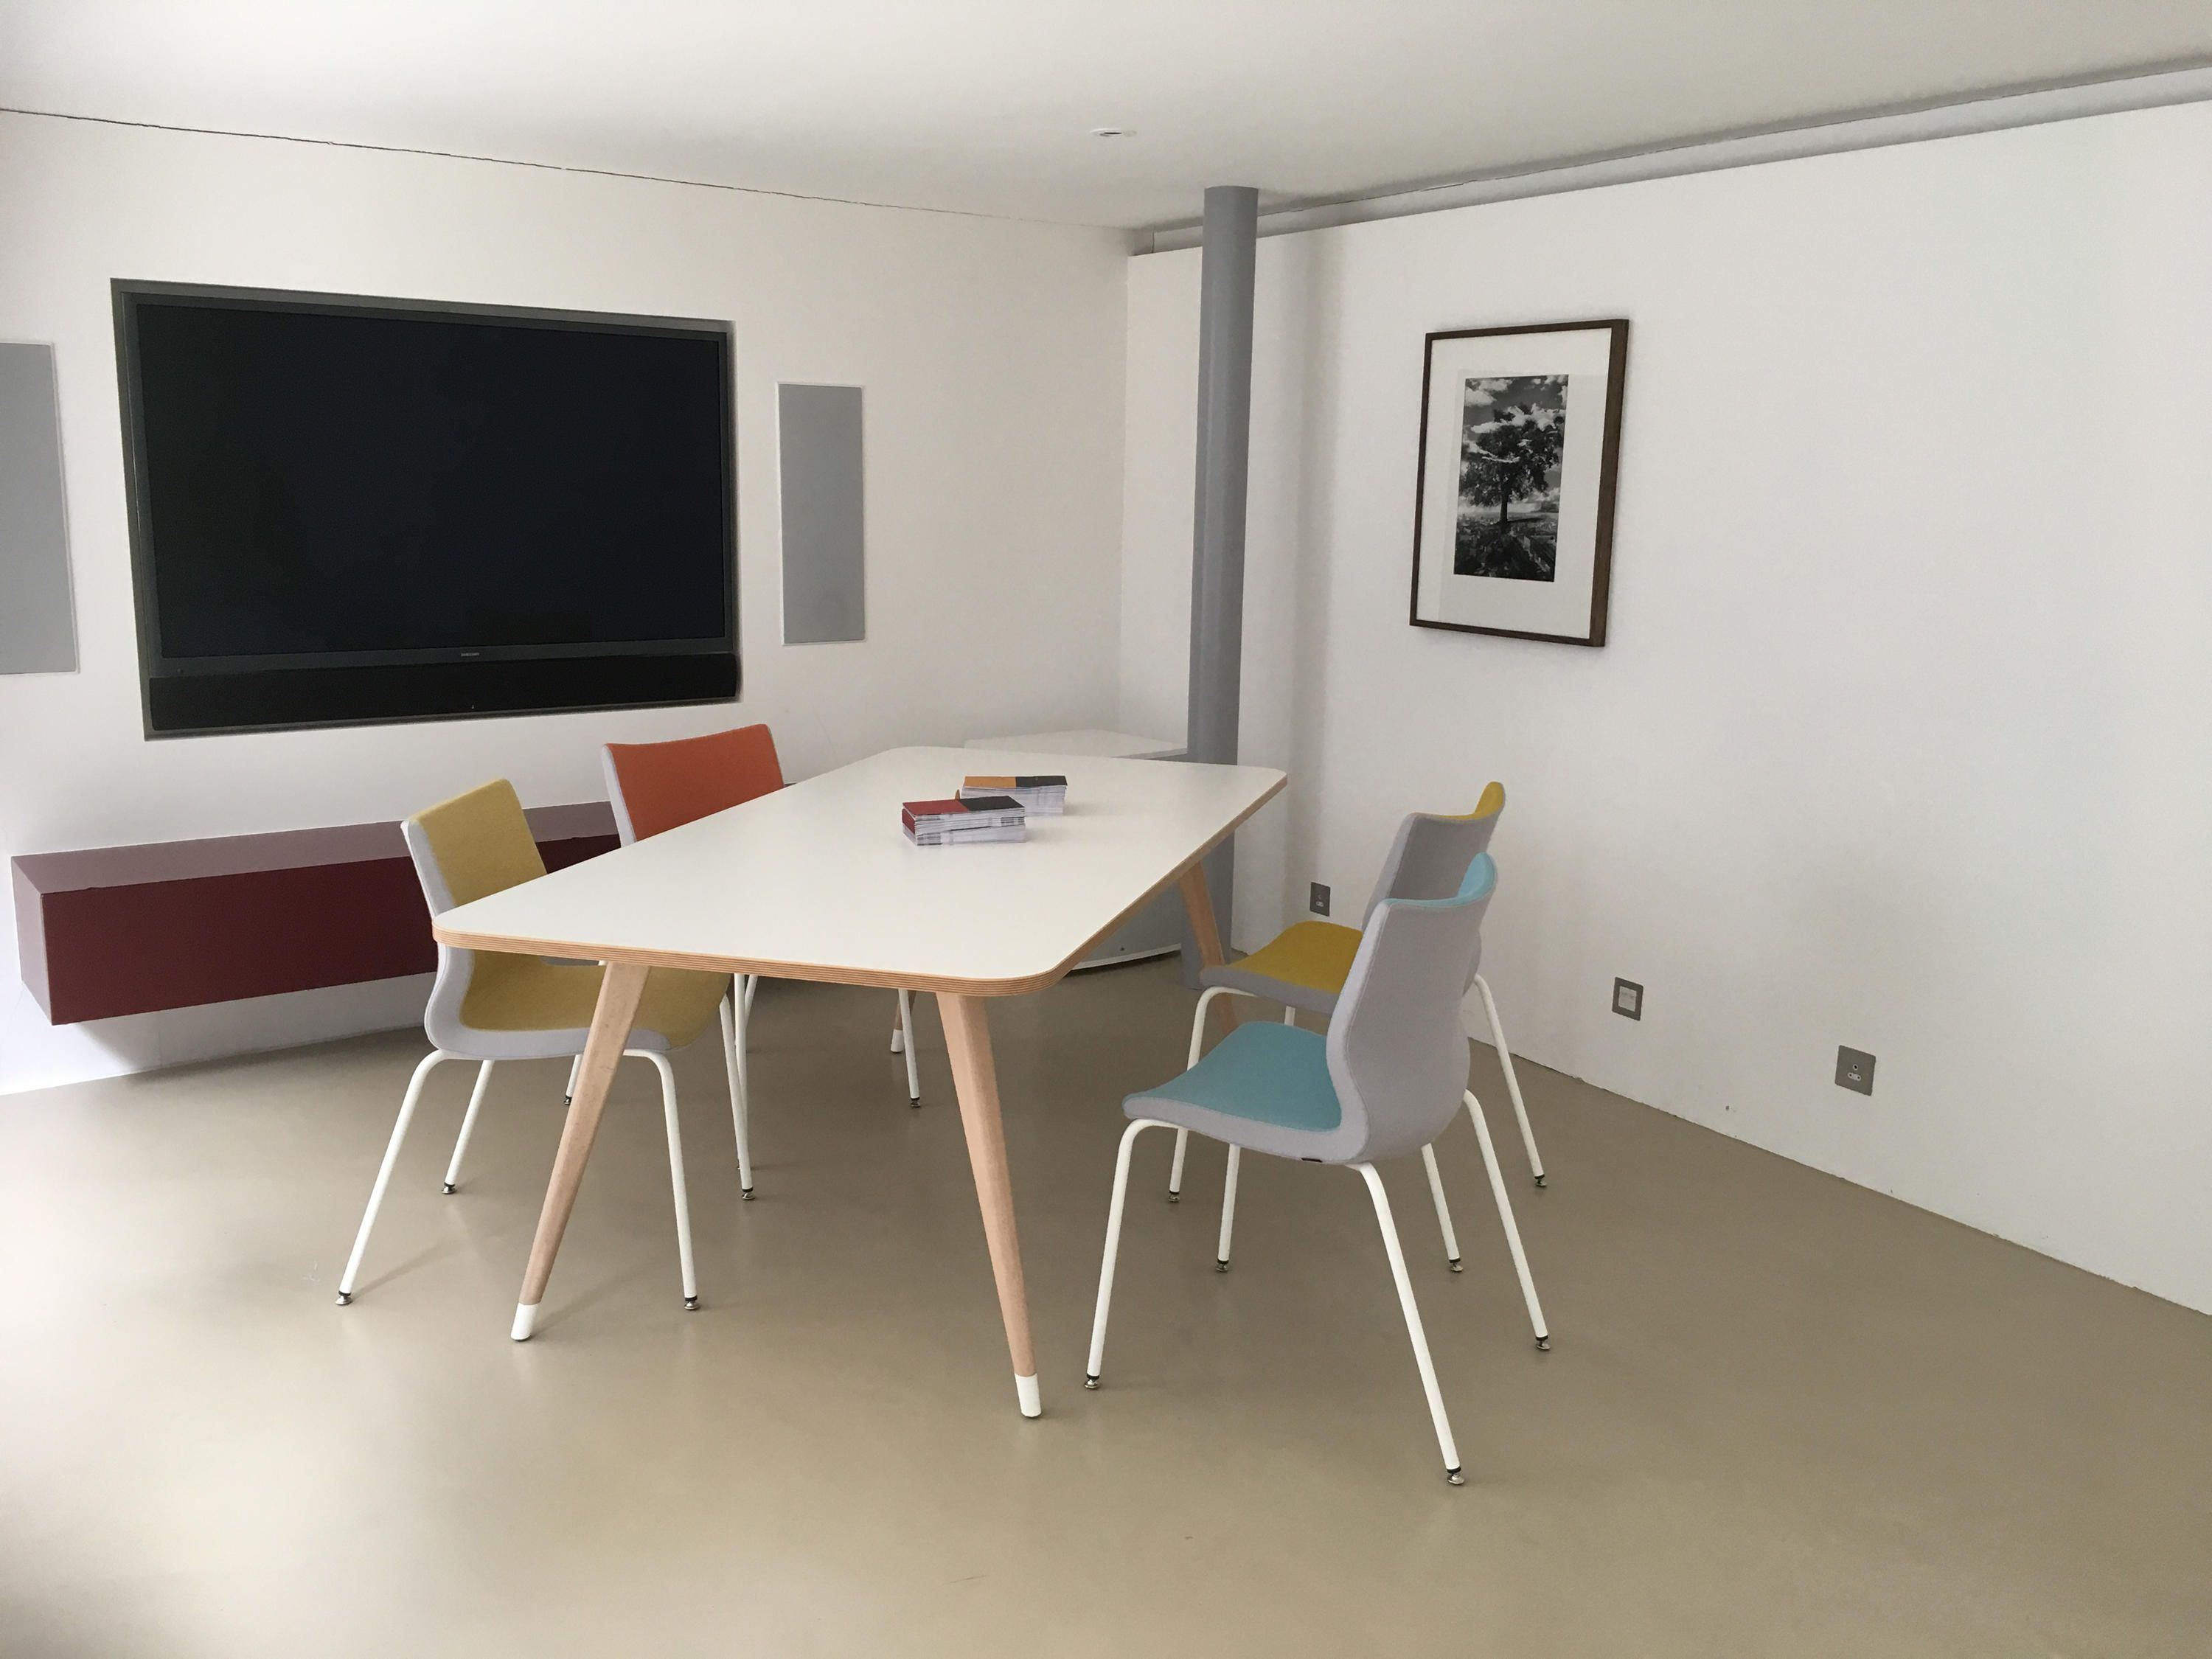 Cooper Table By Guialmi Architonic Nowonarchitonic Interior